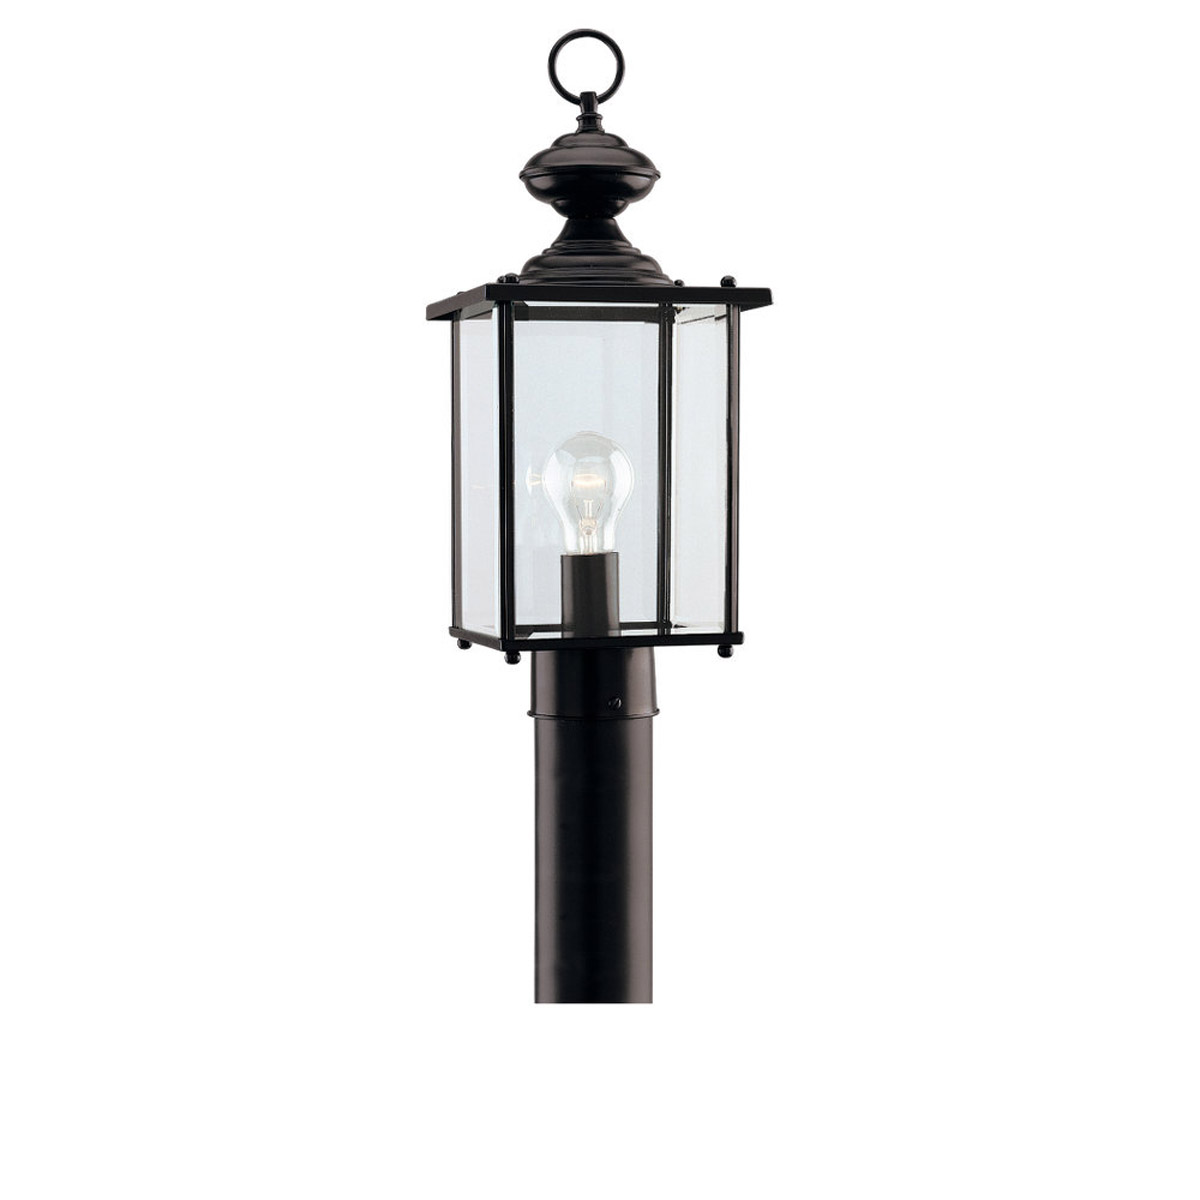 Sea Gull Lighting Jamestowne 1 Light Outdoor Post Lantern in Black 8257-12